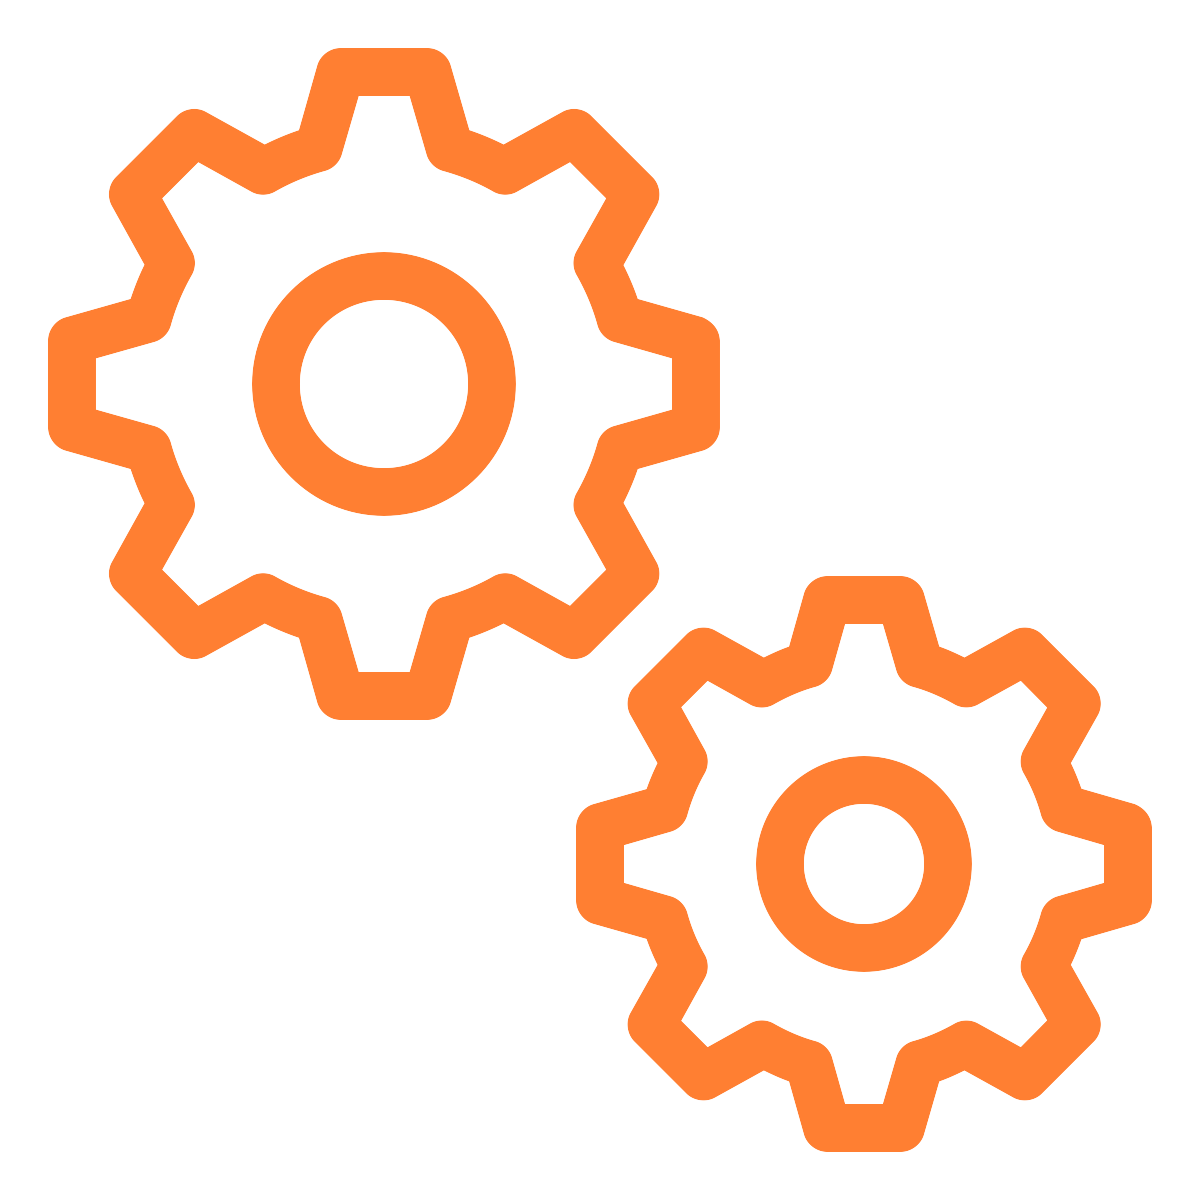 Manufacturing-orange.png